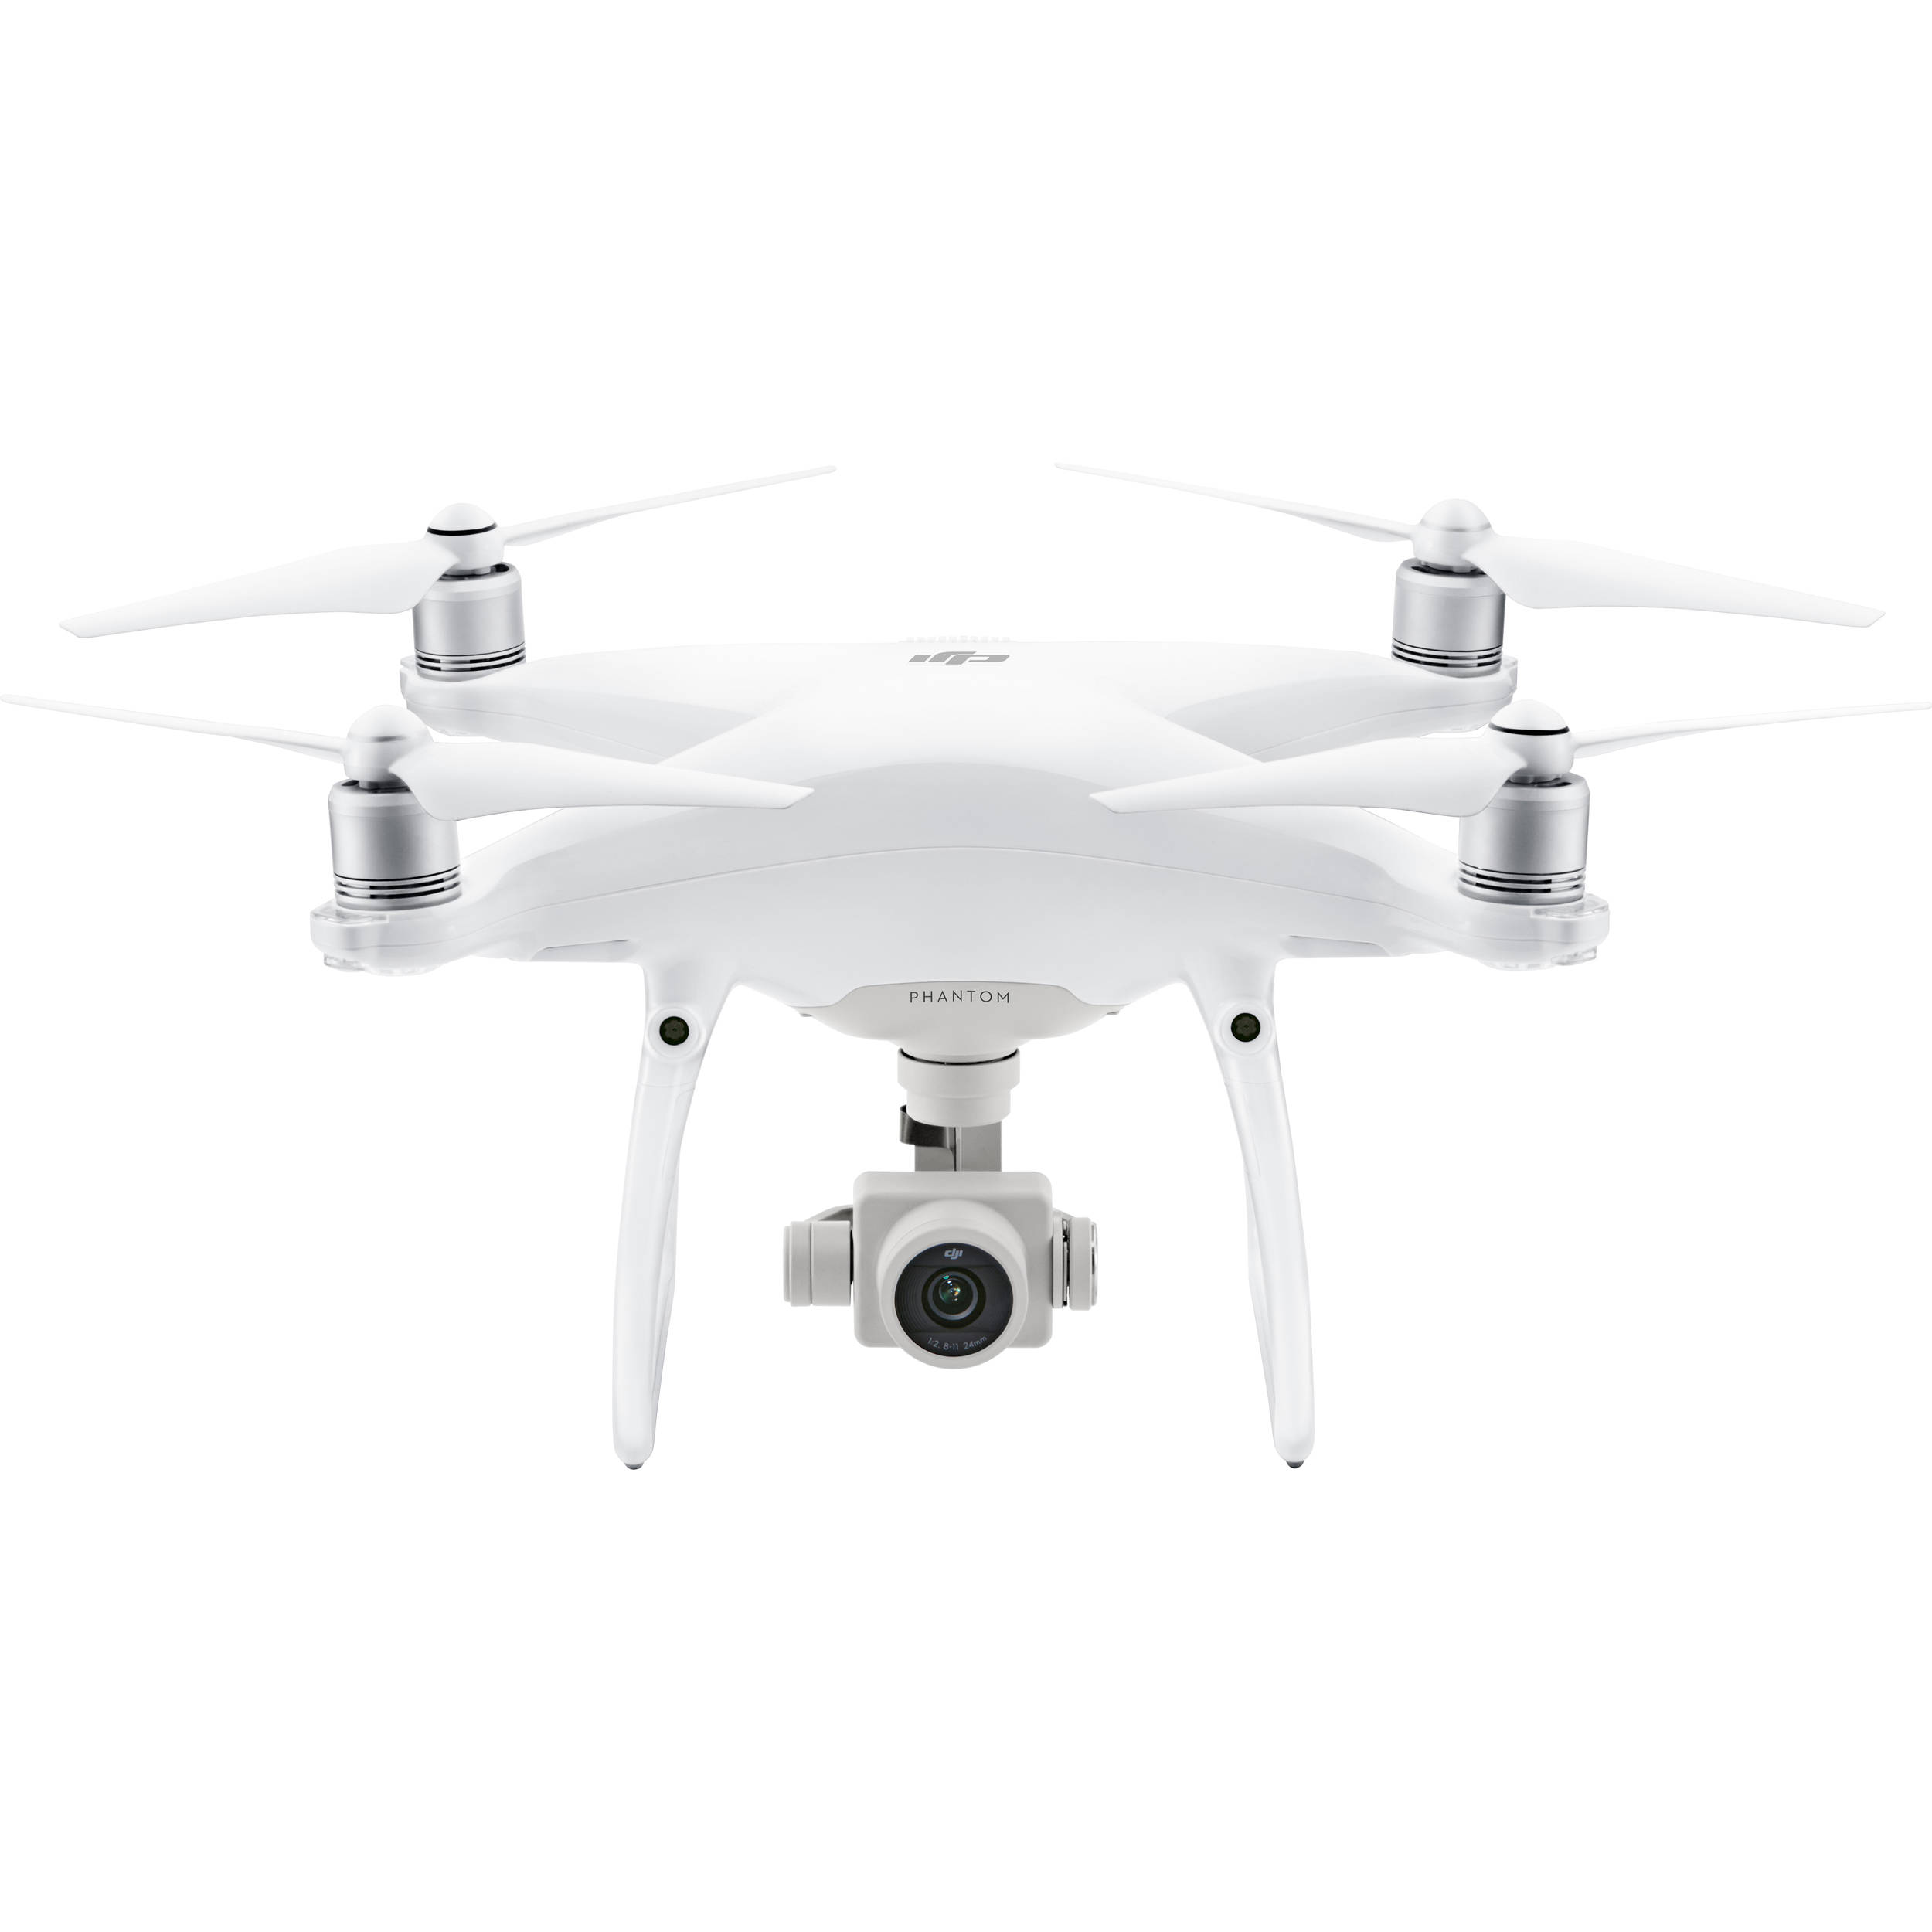 MANUALI DJI PHANTOM 4 ADVANCED ENAC